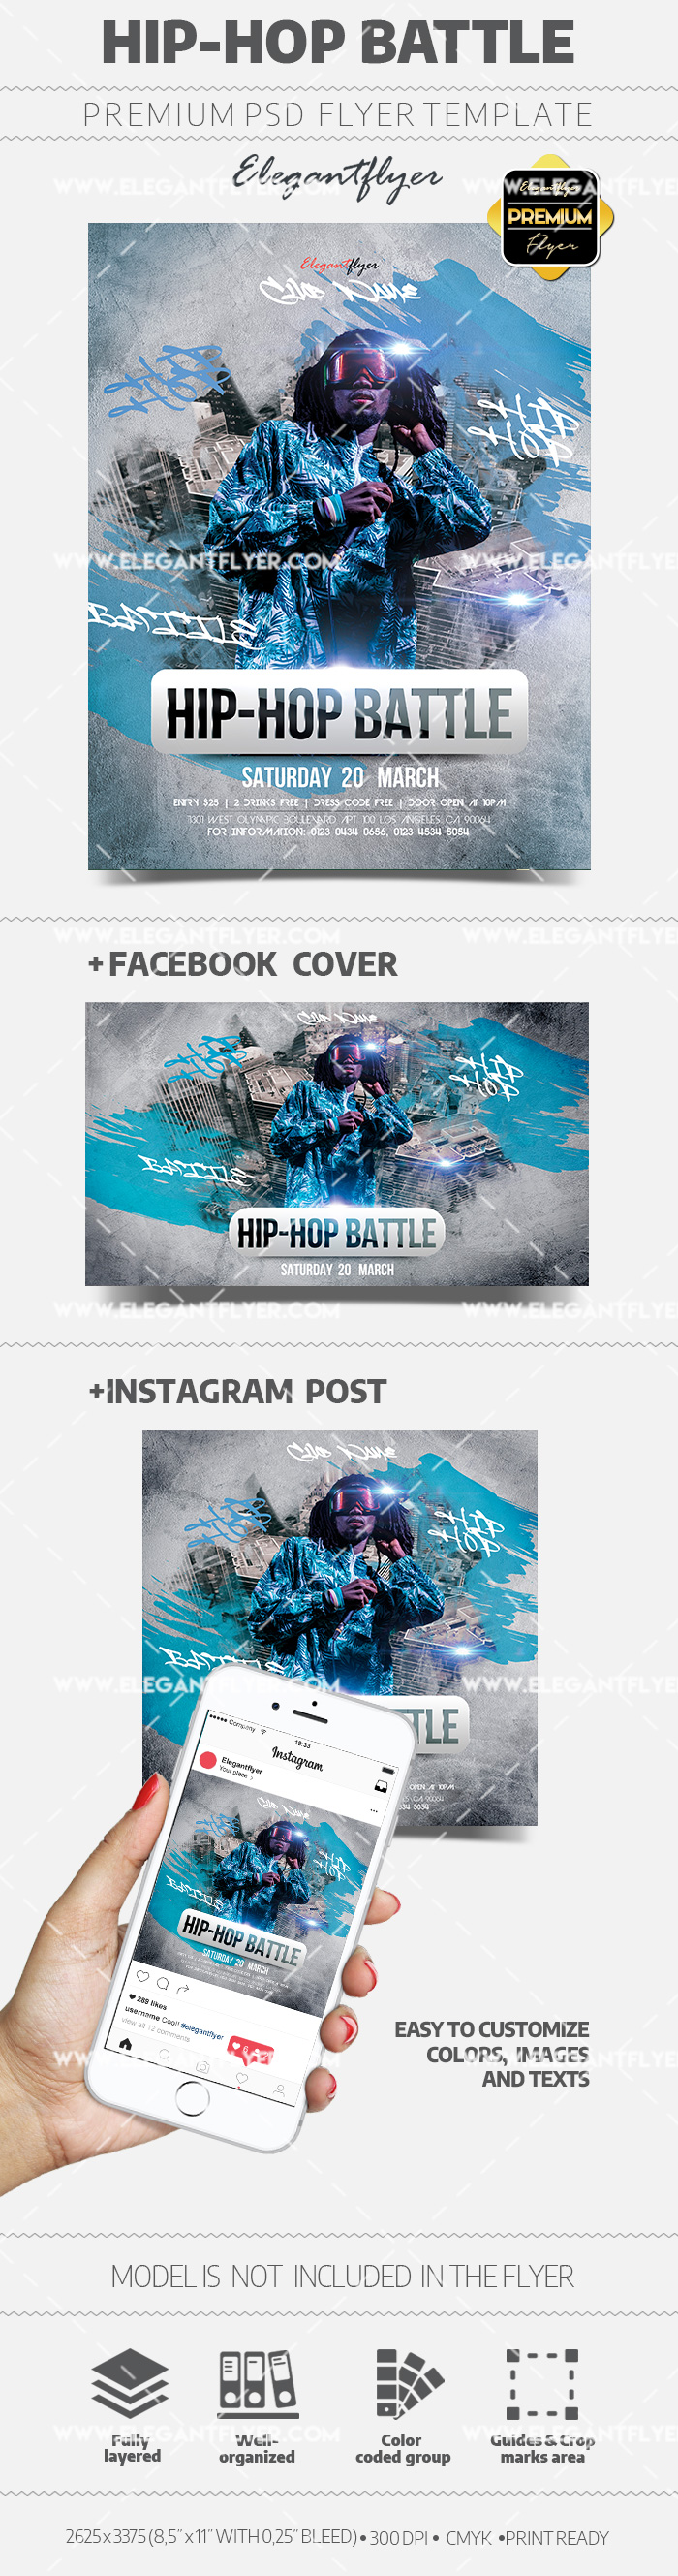 Hip Hop Battle – Flyer PSD Template + Facebook Cover + Instagram Post